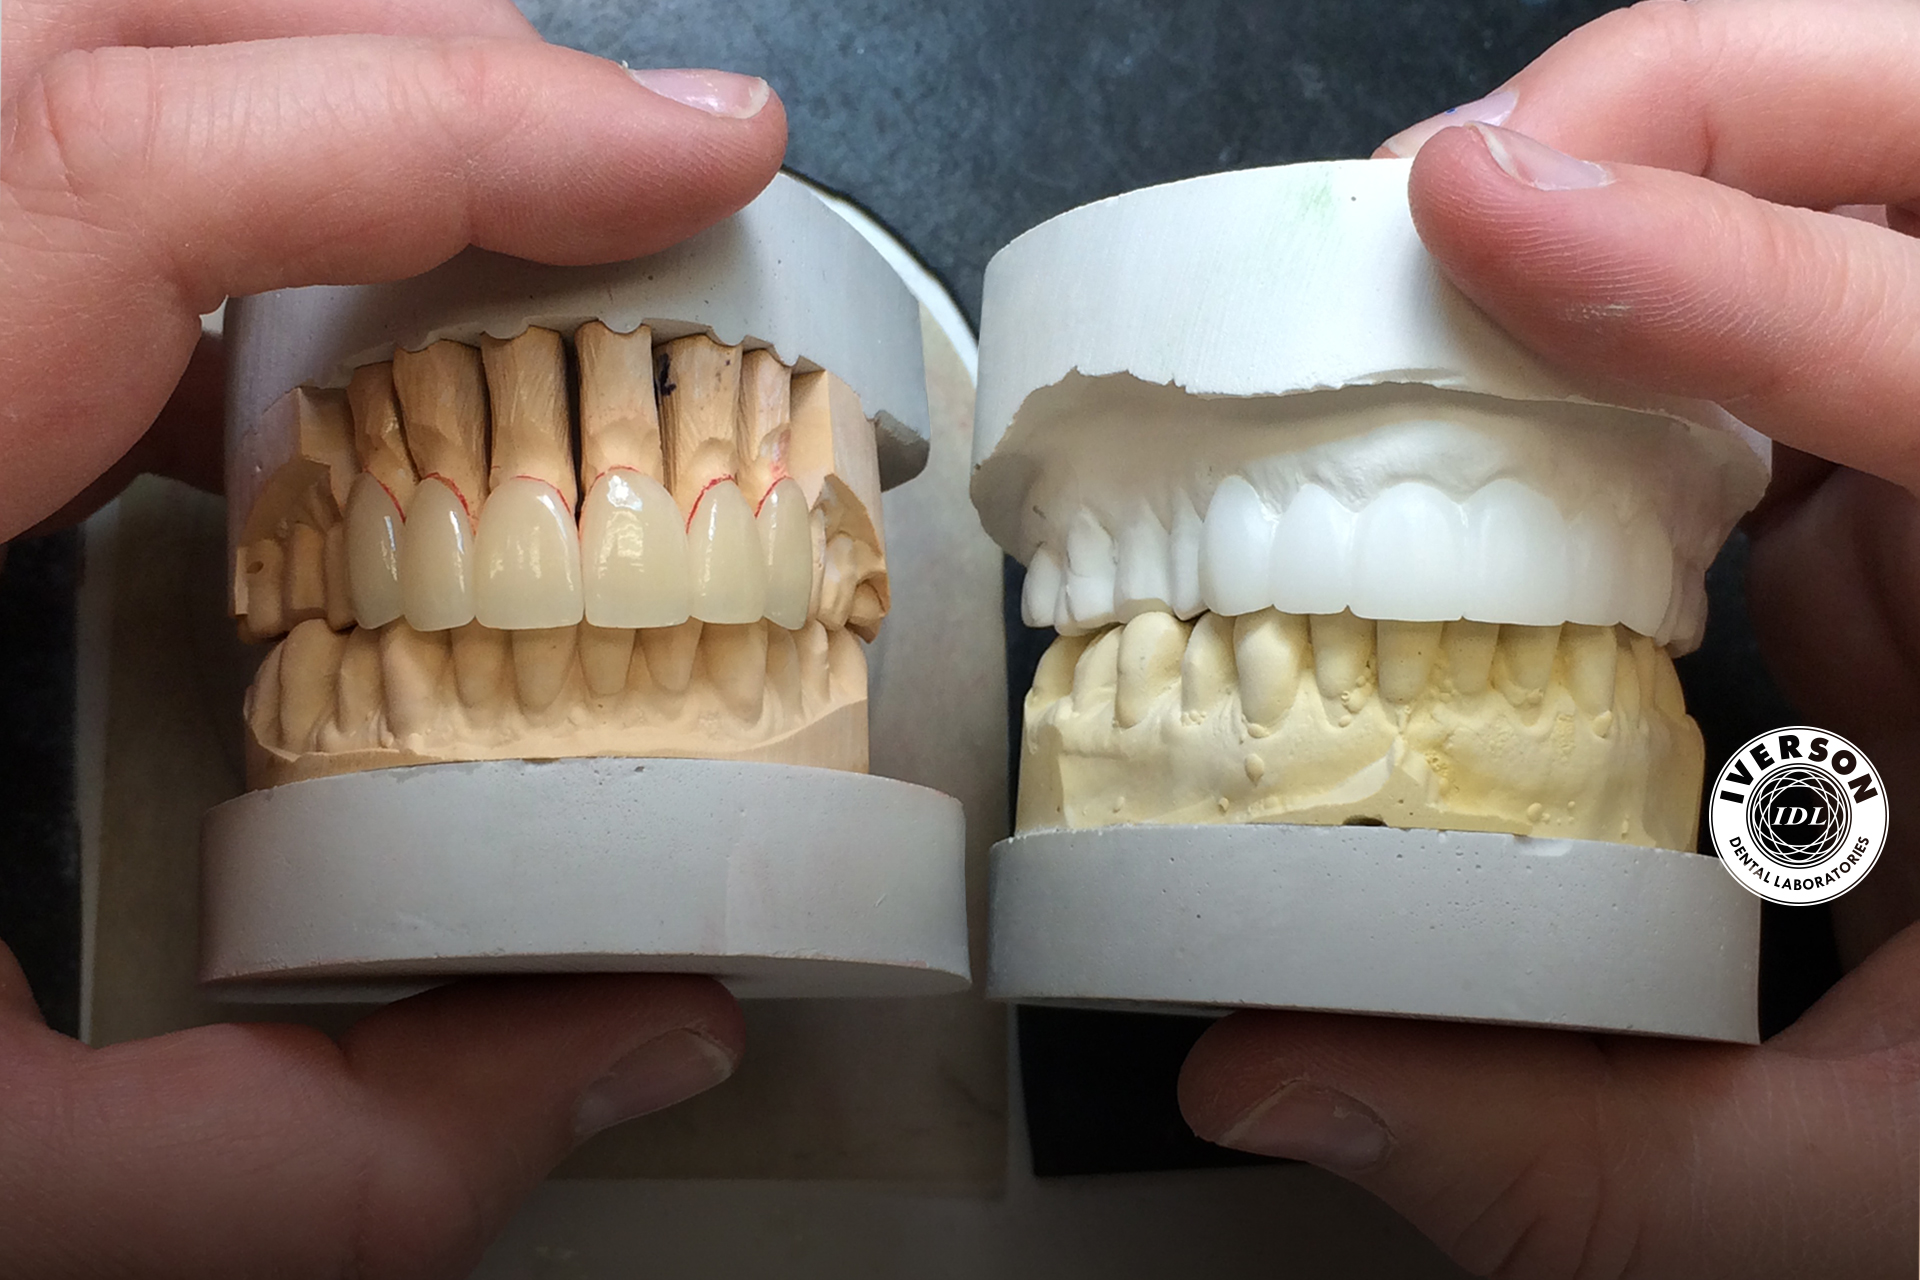 diagnostic wax up with final dental restoration build